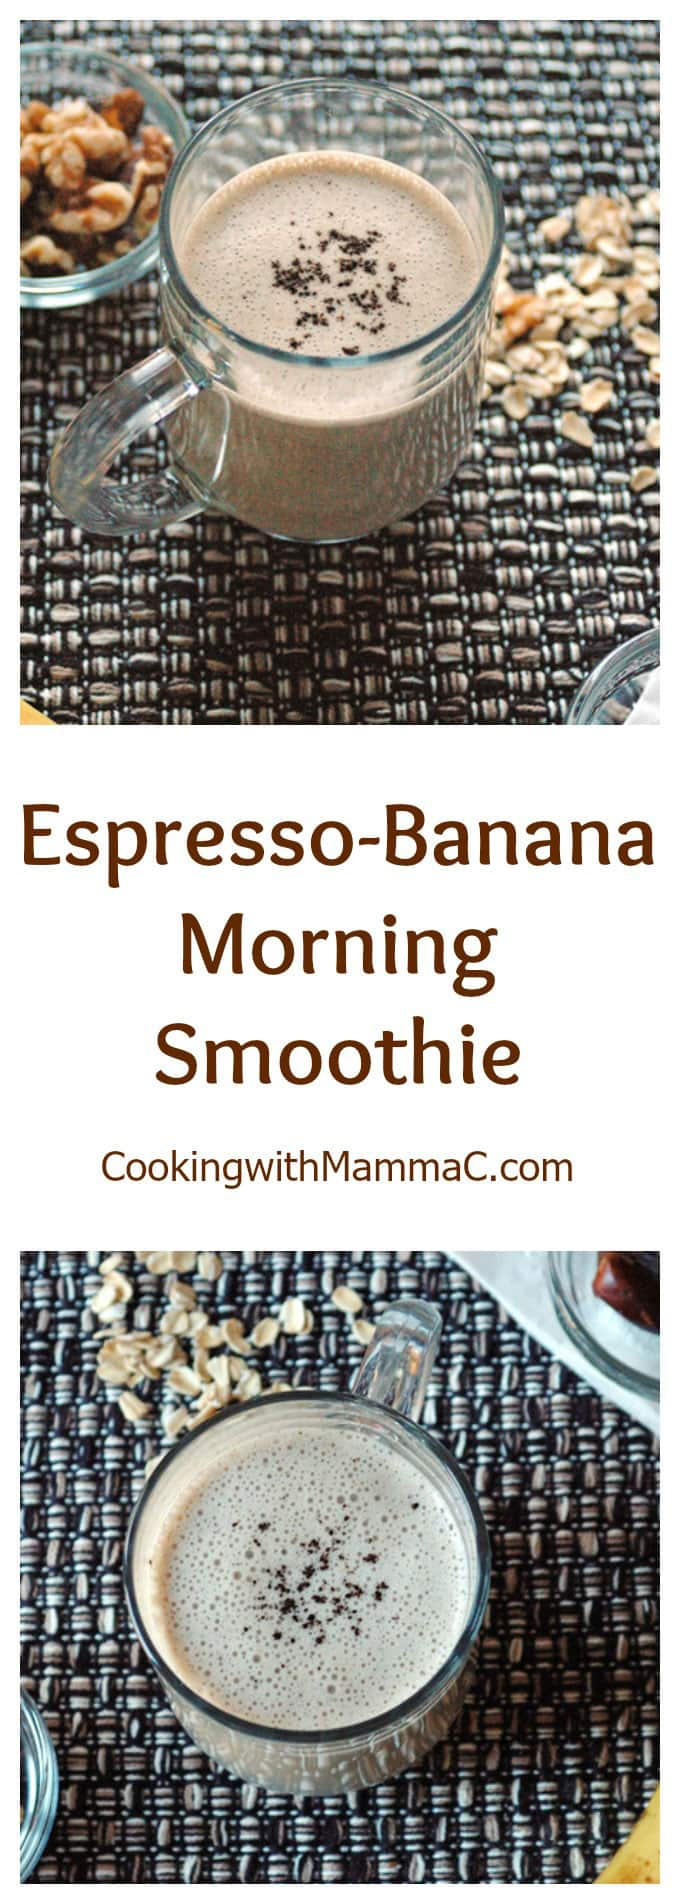 Espresso-Banana Morning Smoothie - A delicious morning beverage that's vegan and gluten free! If you love coffee, this is for you!